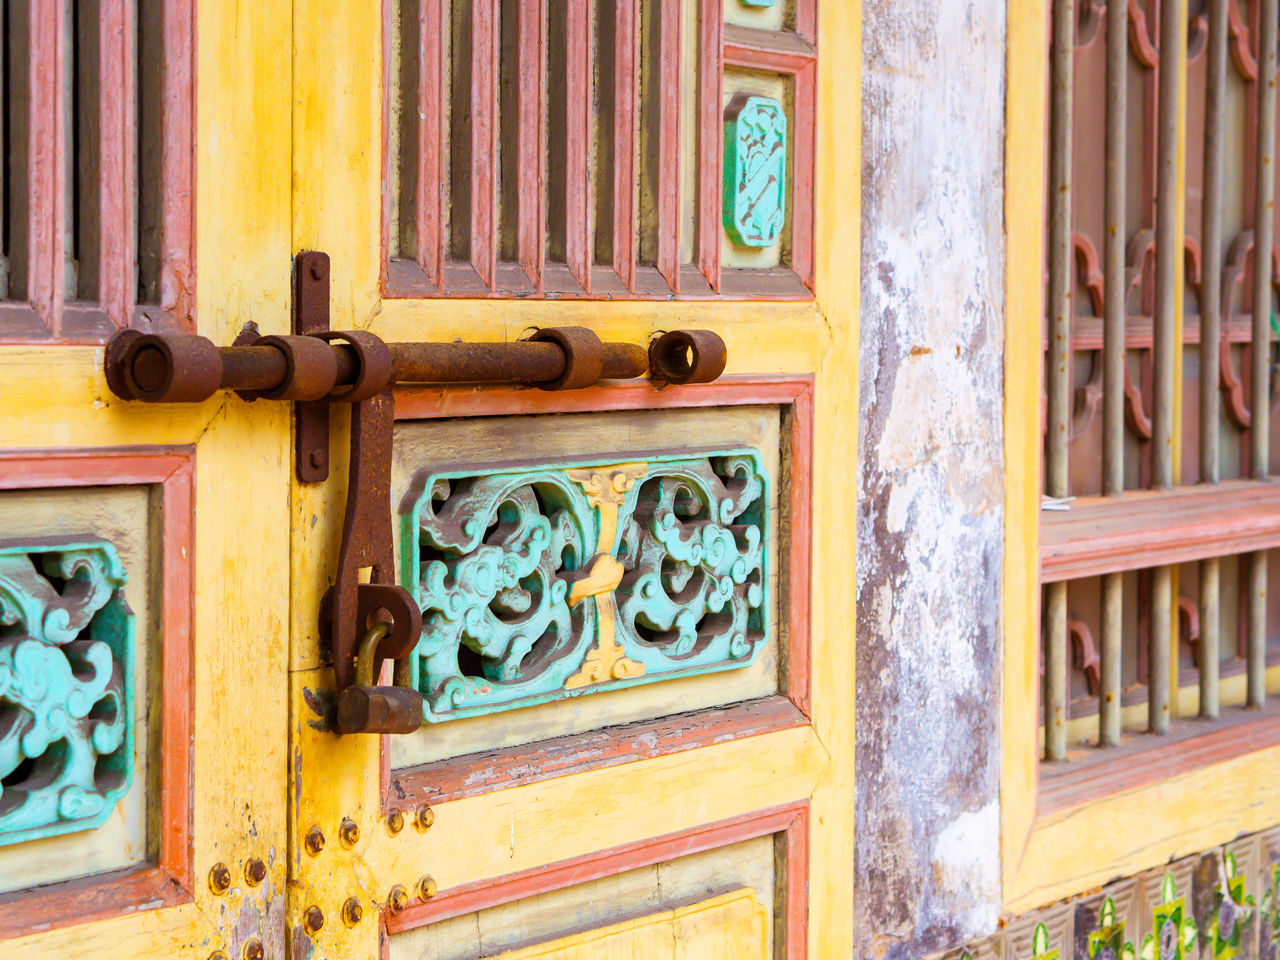 door, wood - material, outdoors, day, no people, close-up, multi colored, backgrounds, building exterior, architecture